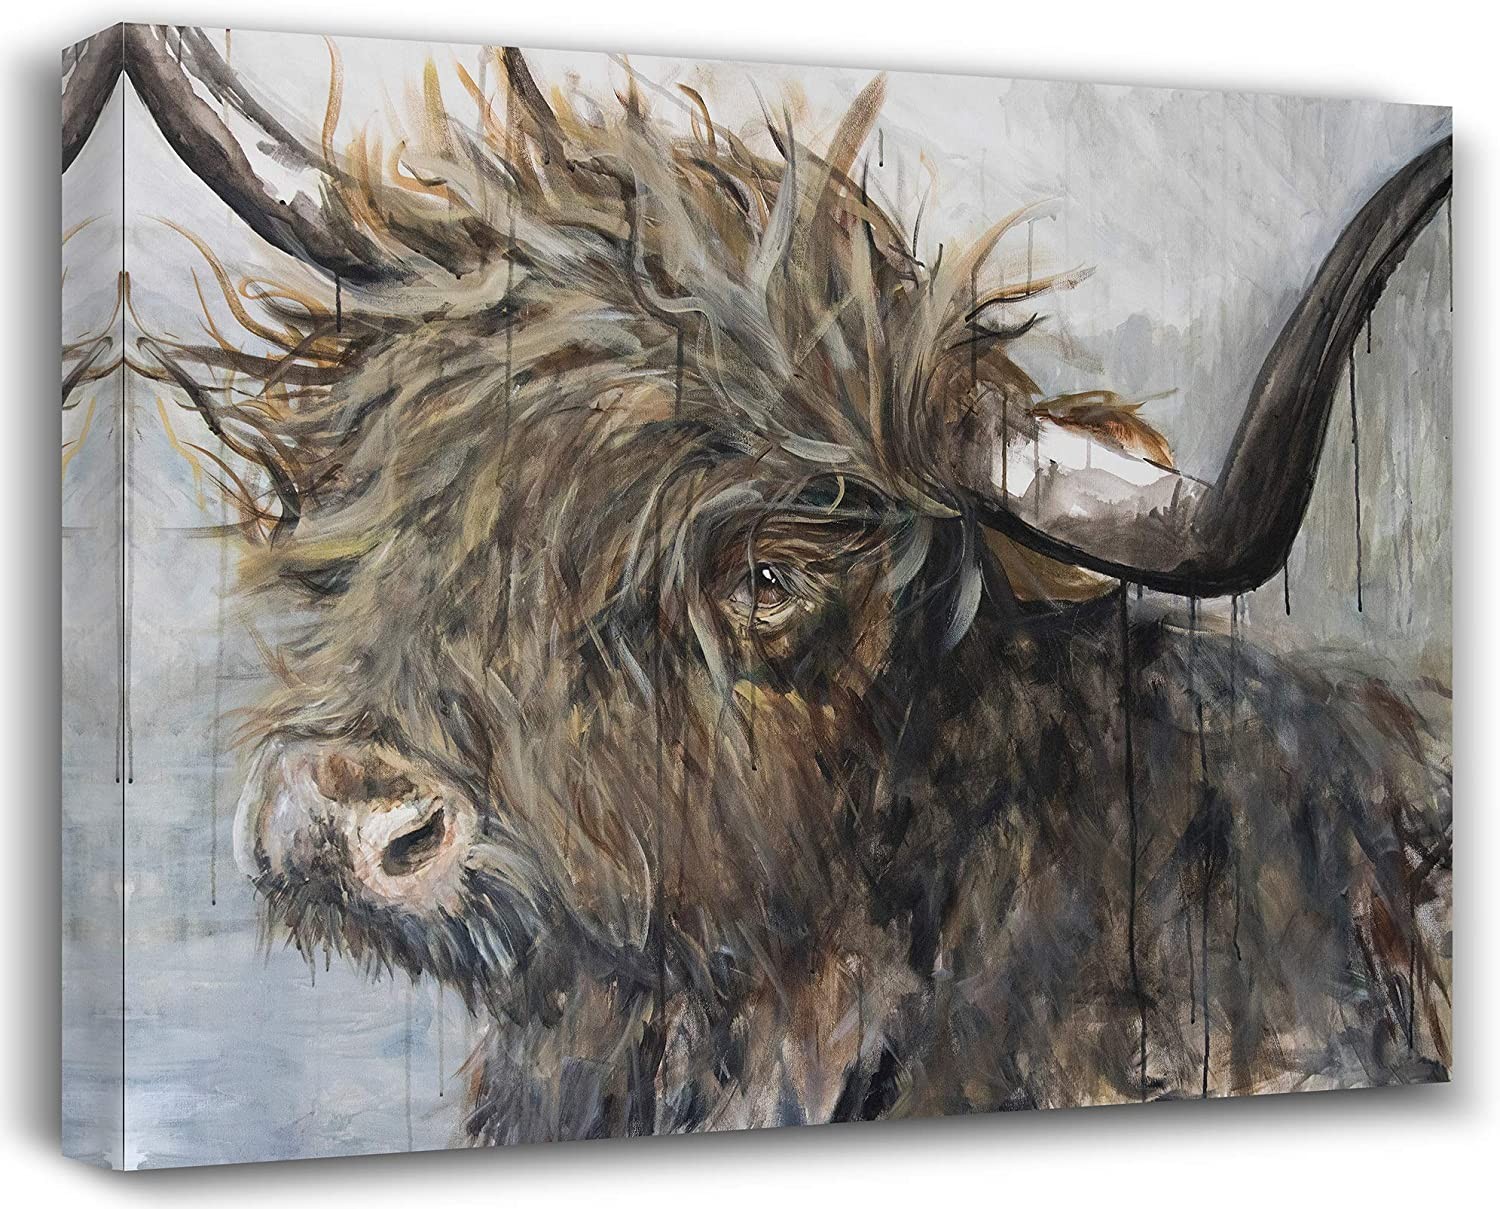 Highland Cow Wall Art SEEN ON HGTV Cow Pictures Wall Decor Canvas 16x20 Freedom Highland Cow Canvas Artwork For Home Decor